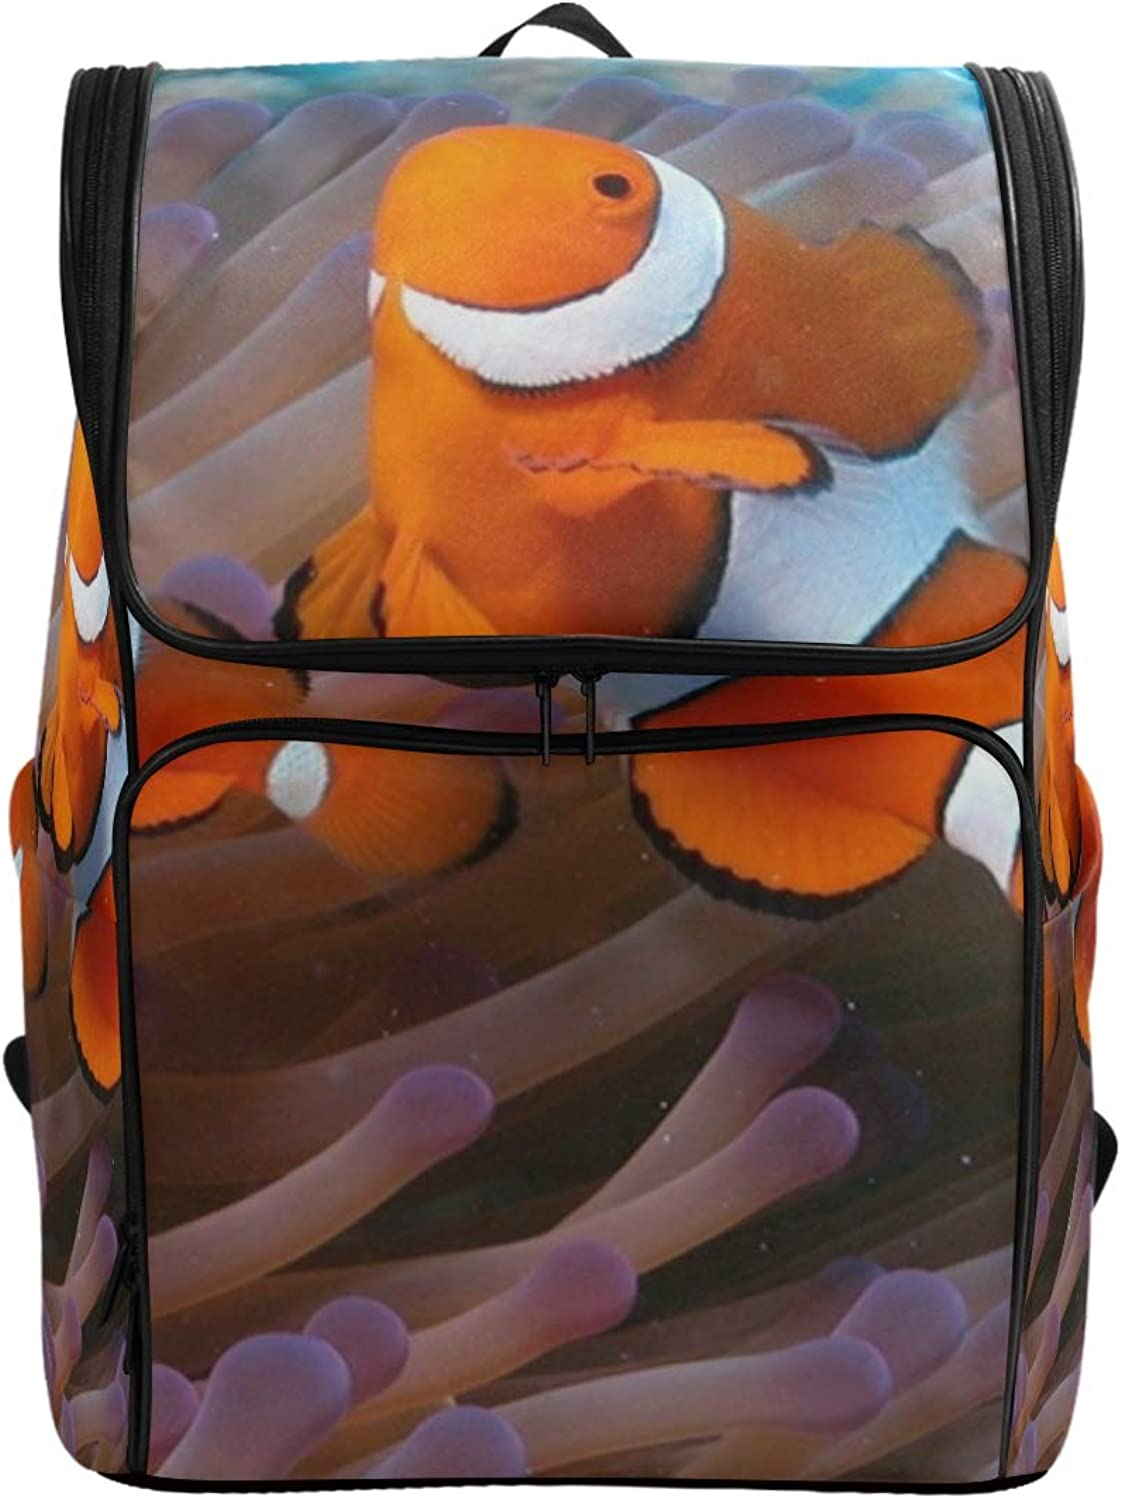 MONTOJ Anemone Fish Outdoor Hiking Backpack Hiking & Travelling Backpack with Laptop Compartment & Camping Backpack